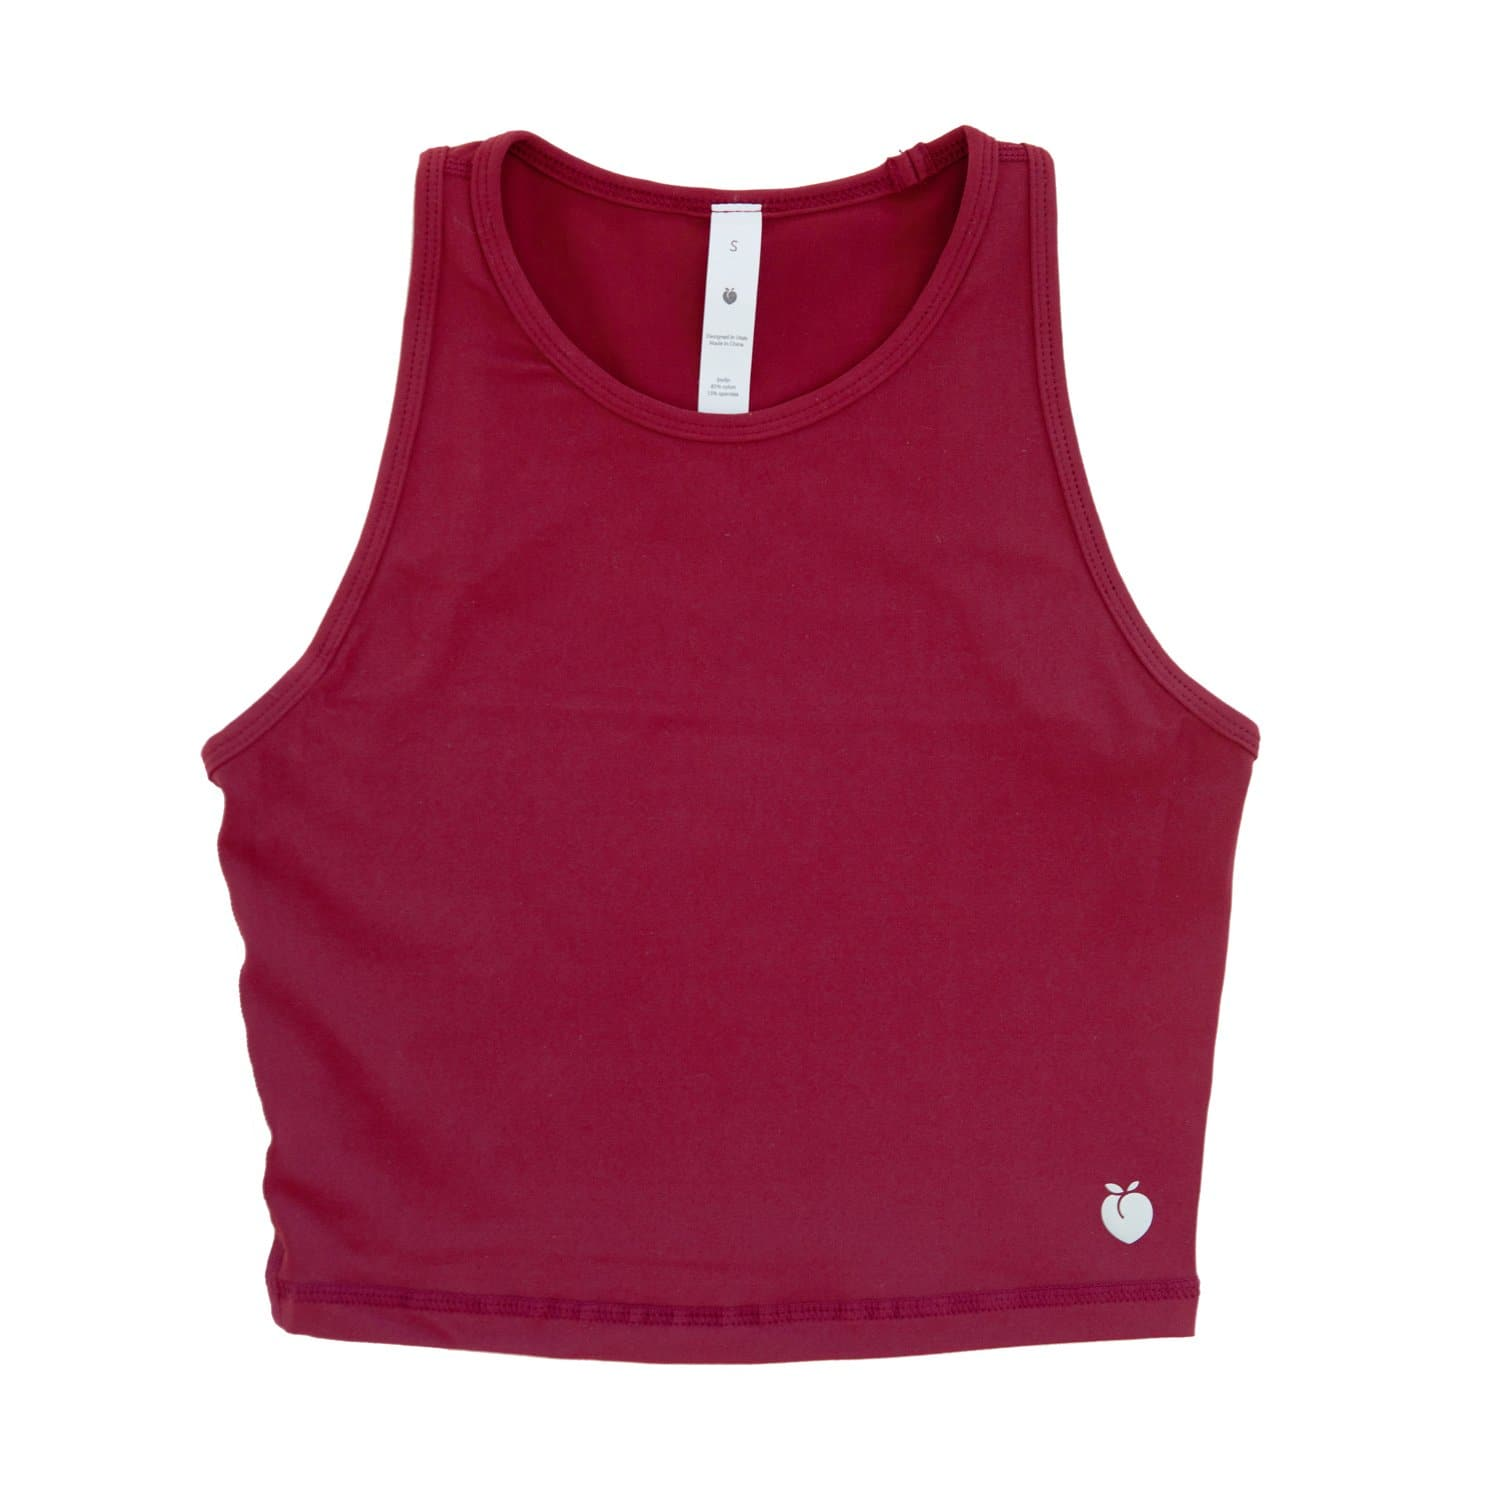 Racerback Crop Top - Wine